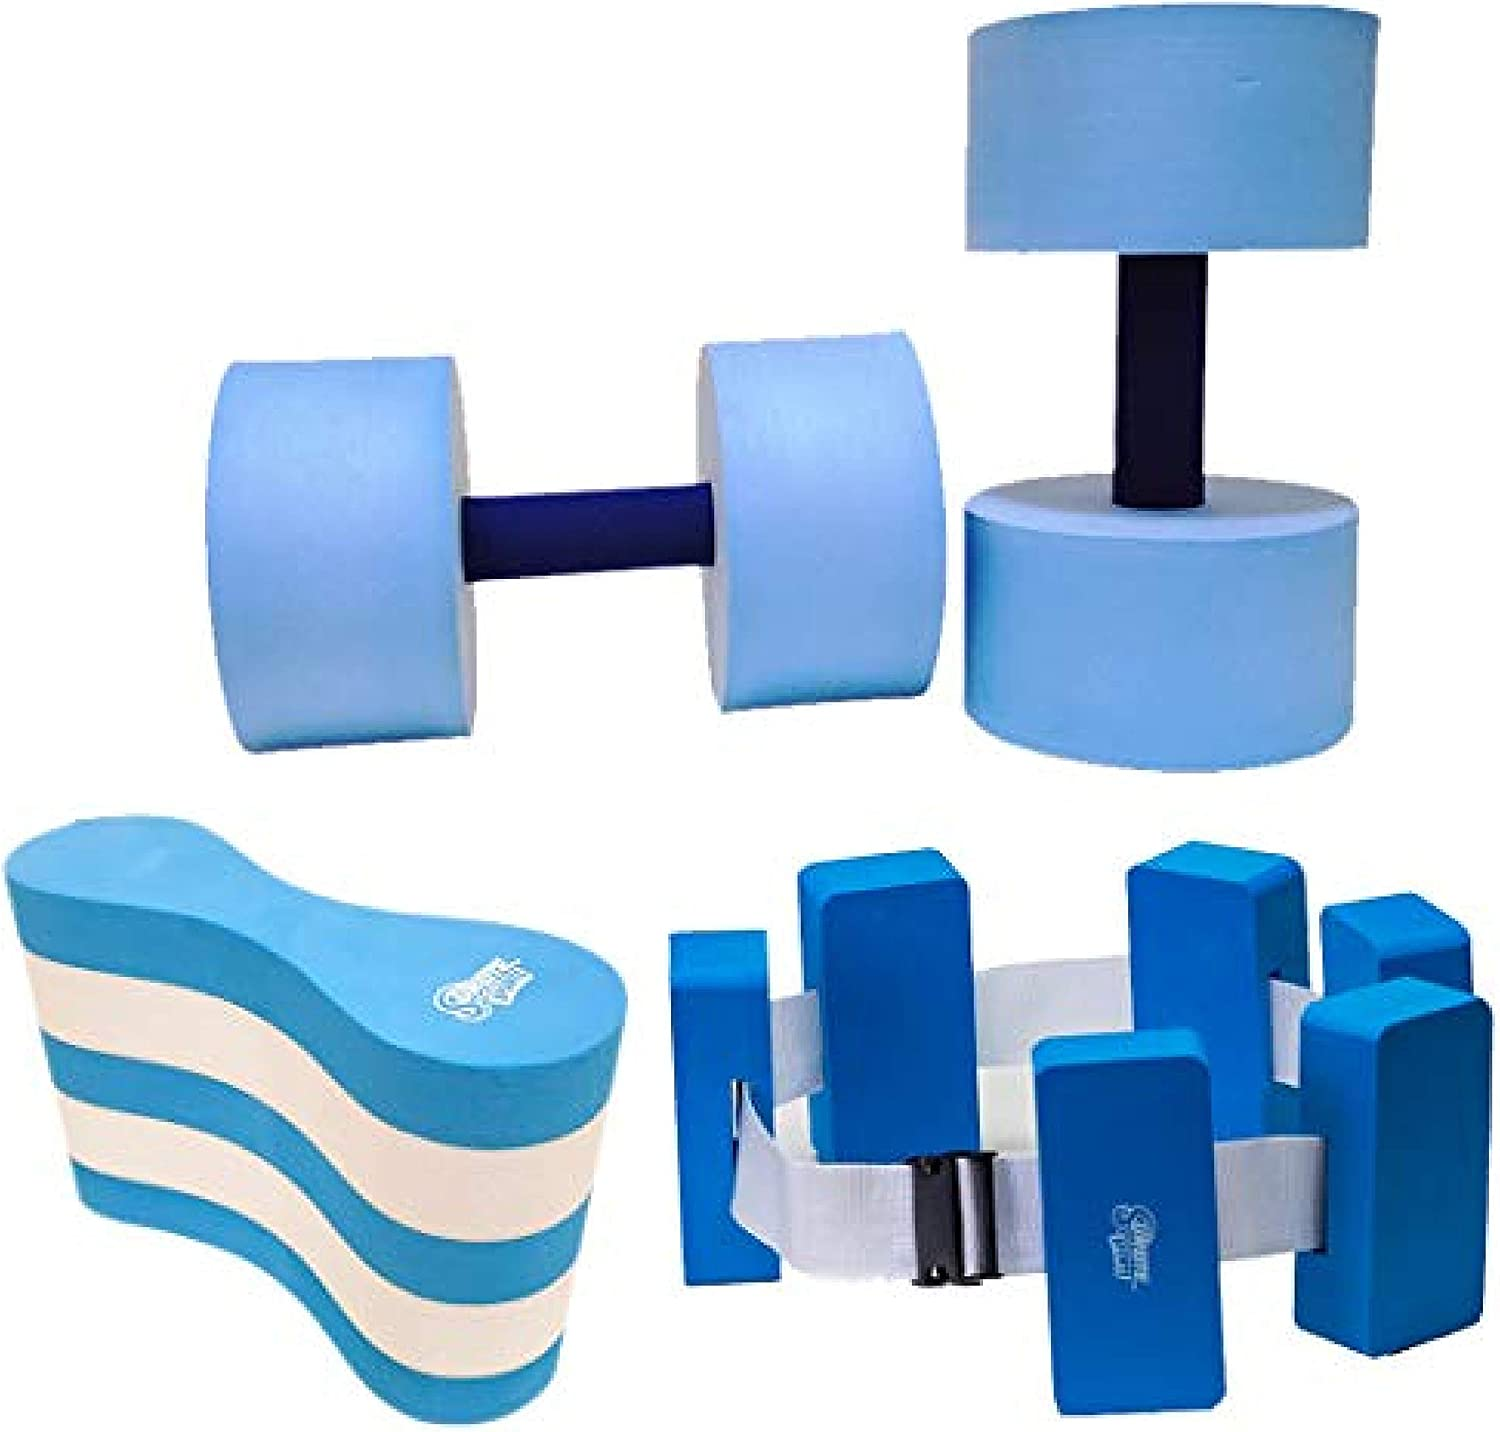 Sunlite Sports High-Density EVA-Foam Dumbbell Set, Water Weight, Soft Padded, Water Aerobics, Aqua Therapy, Pool Fitness, Water Exercise